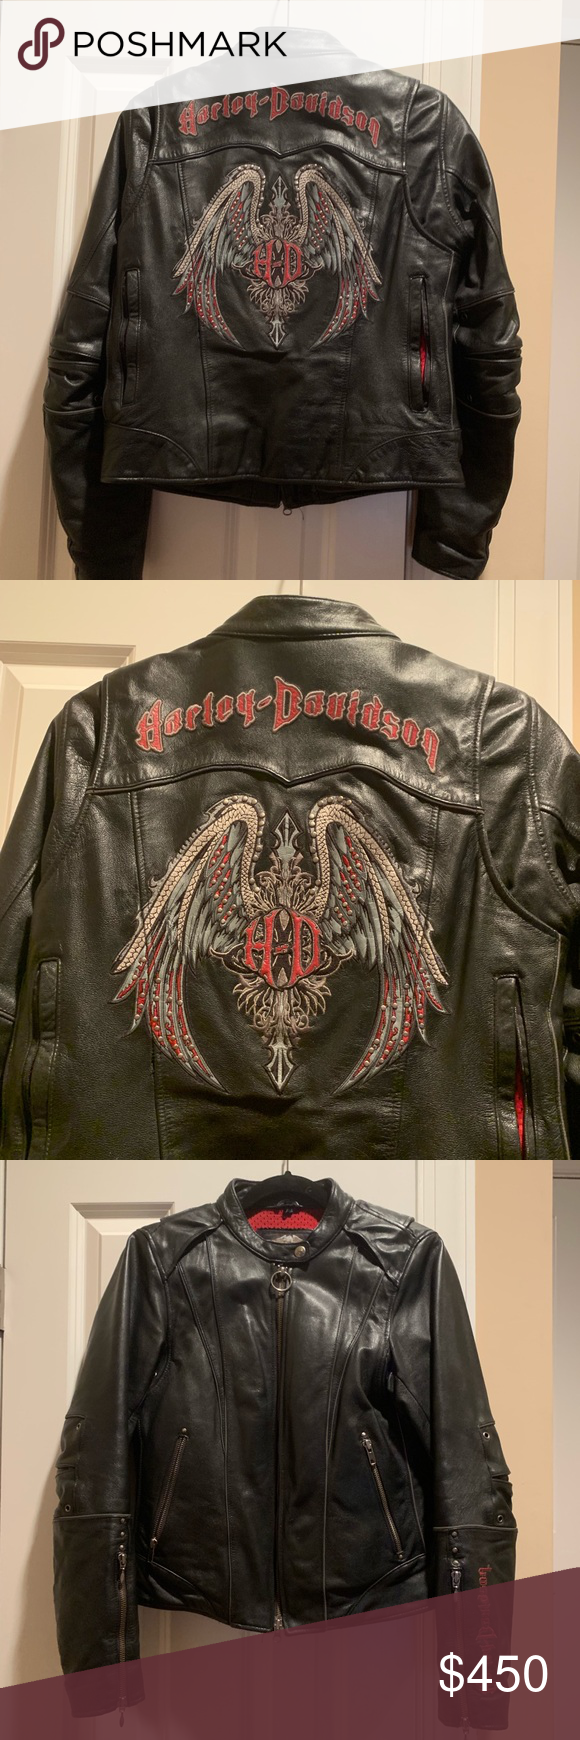 Rare Harley Davidson Road Angel Leather Stud Wings Womens Black Leather Jacket Leather Jackets Women Clothes Design [ 1740 x 580 Pixel ]